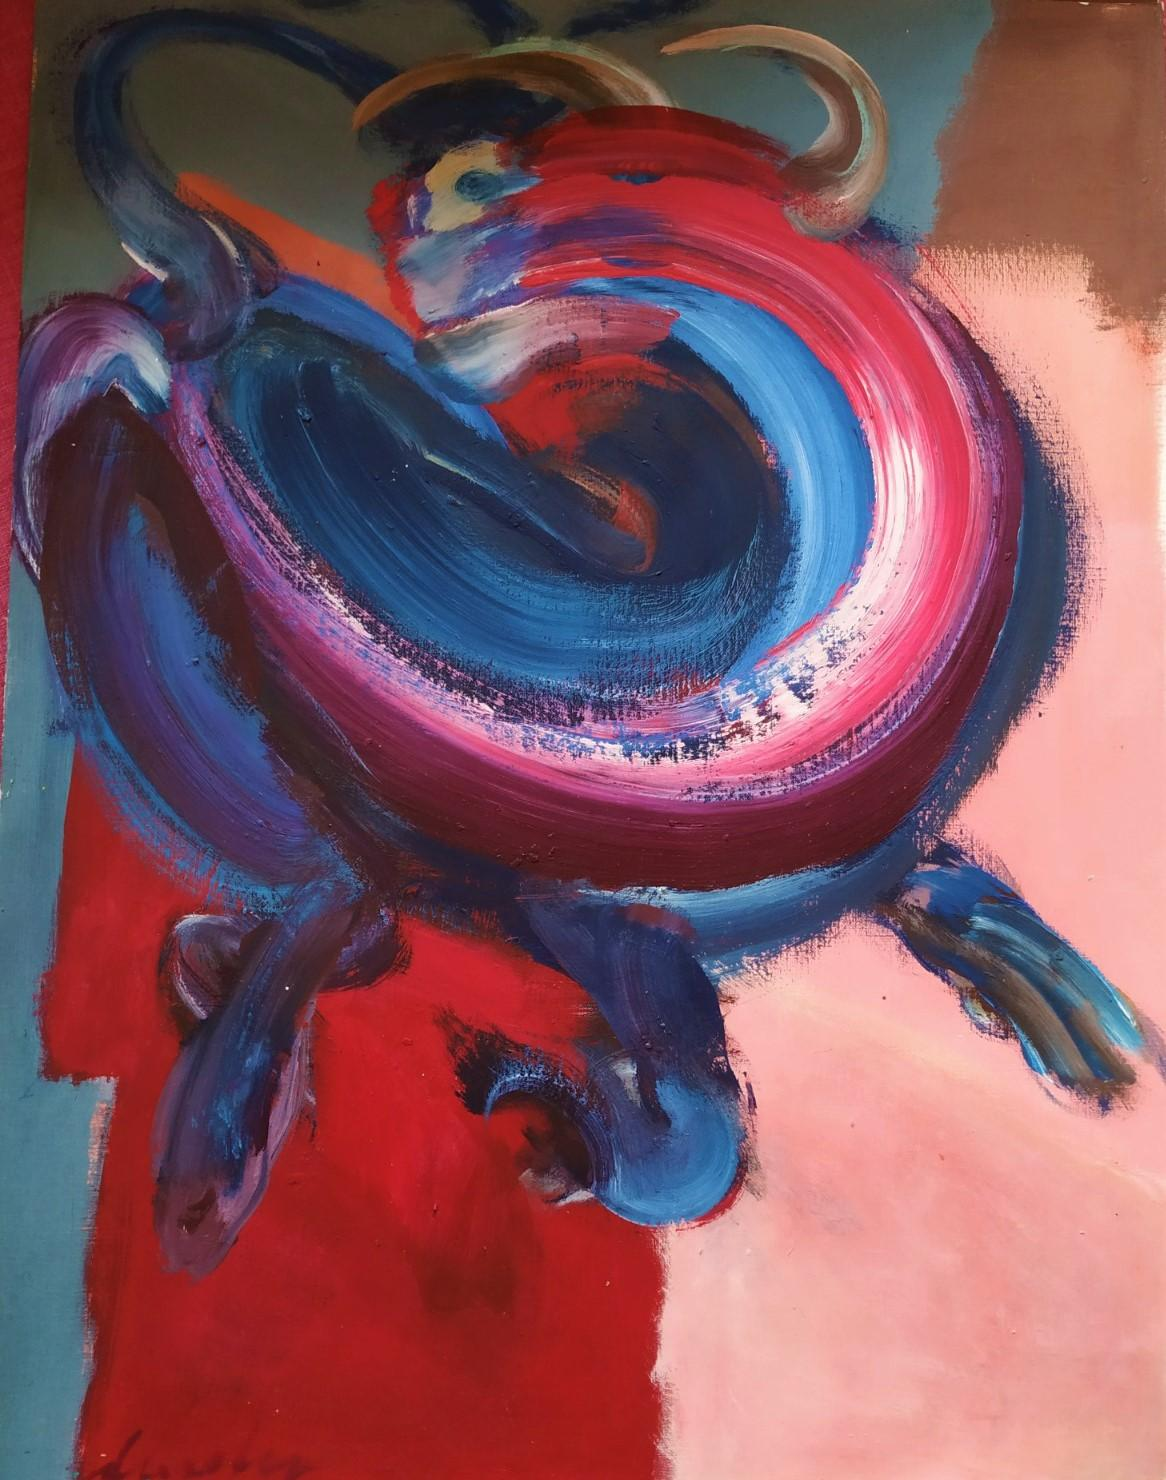 Bull XV by C. Dupety - bullfighting, contemporary painting, work on paper